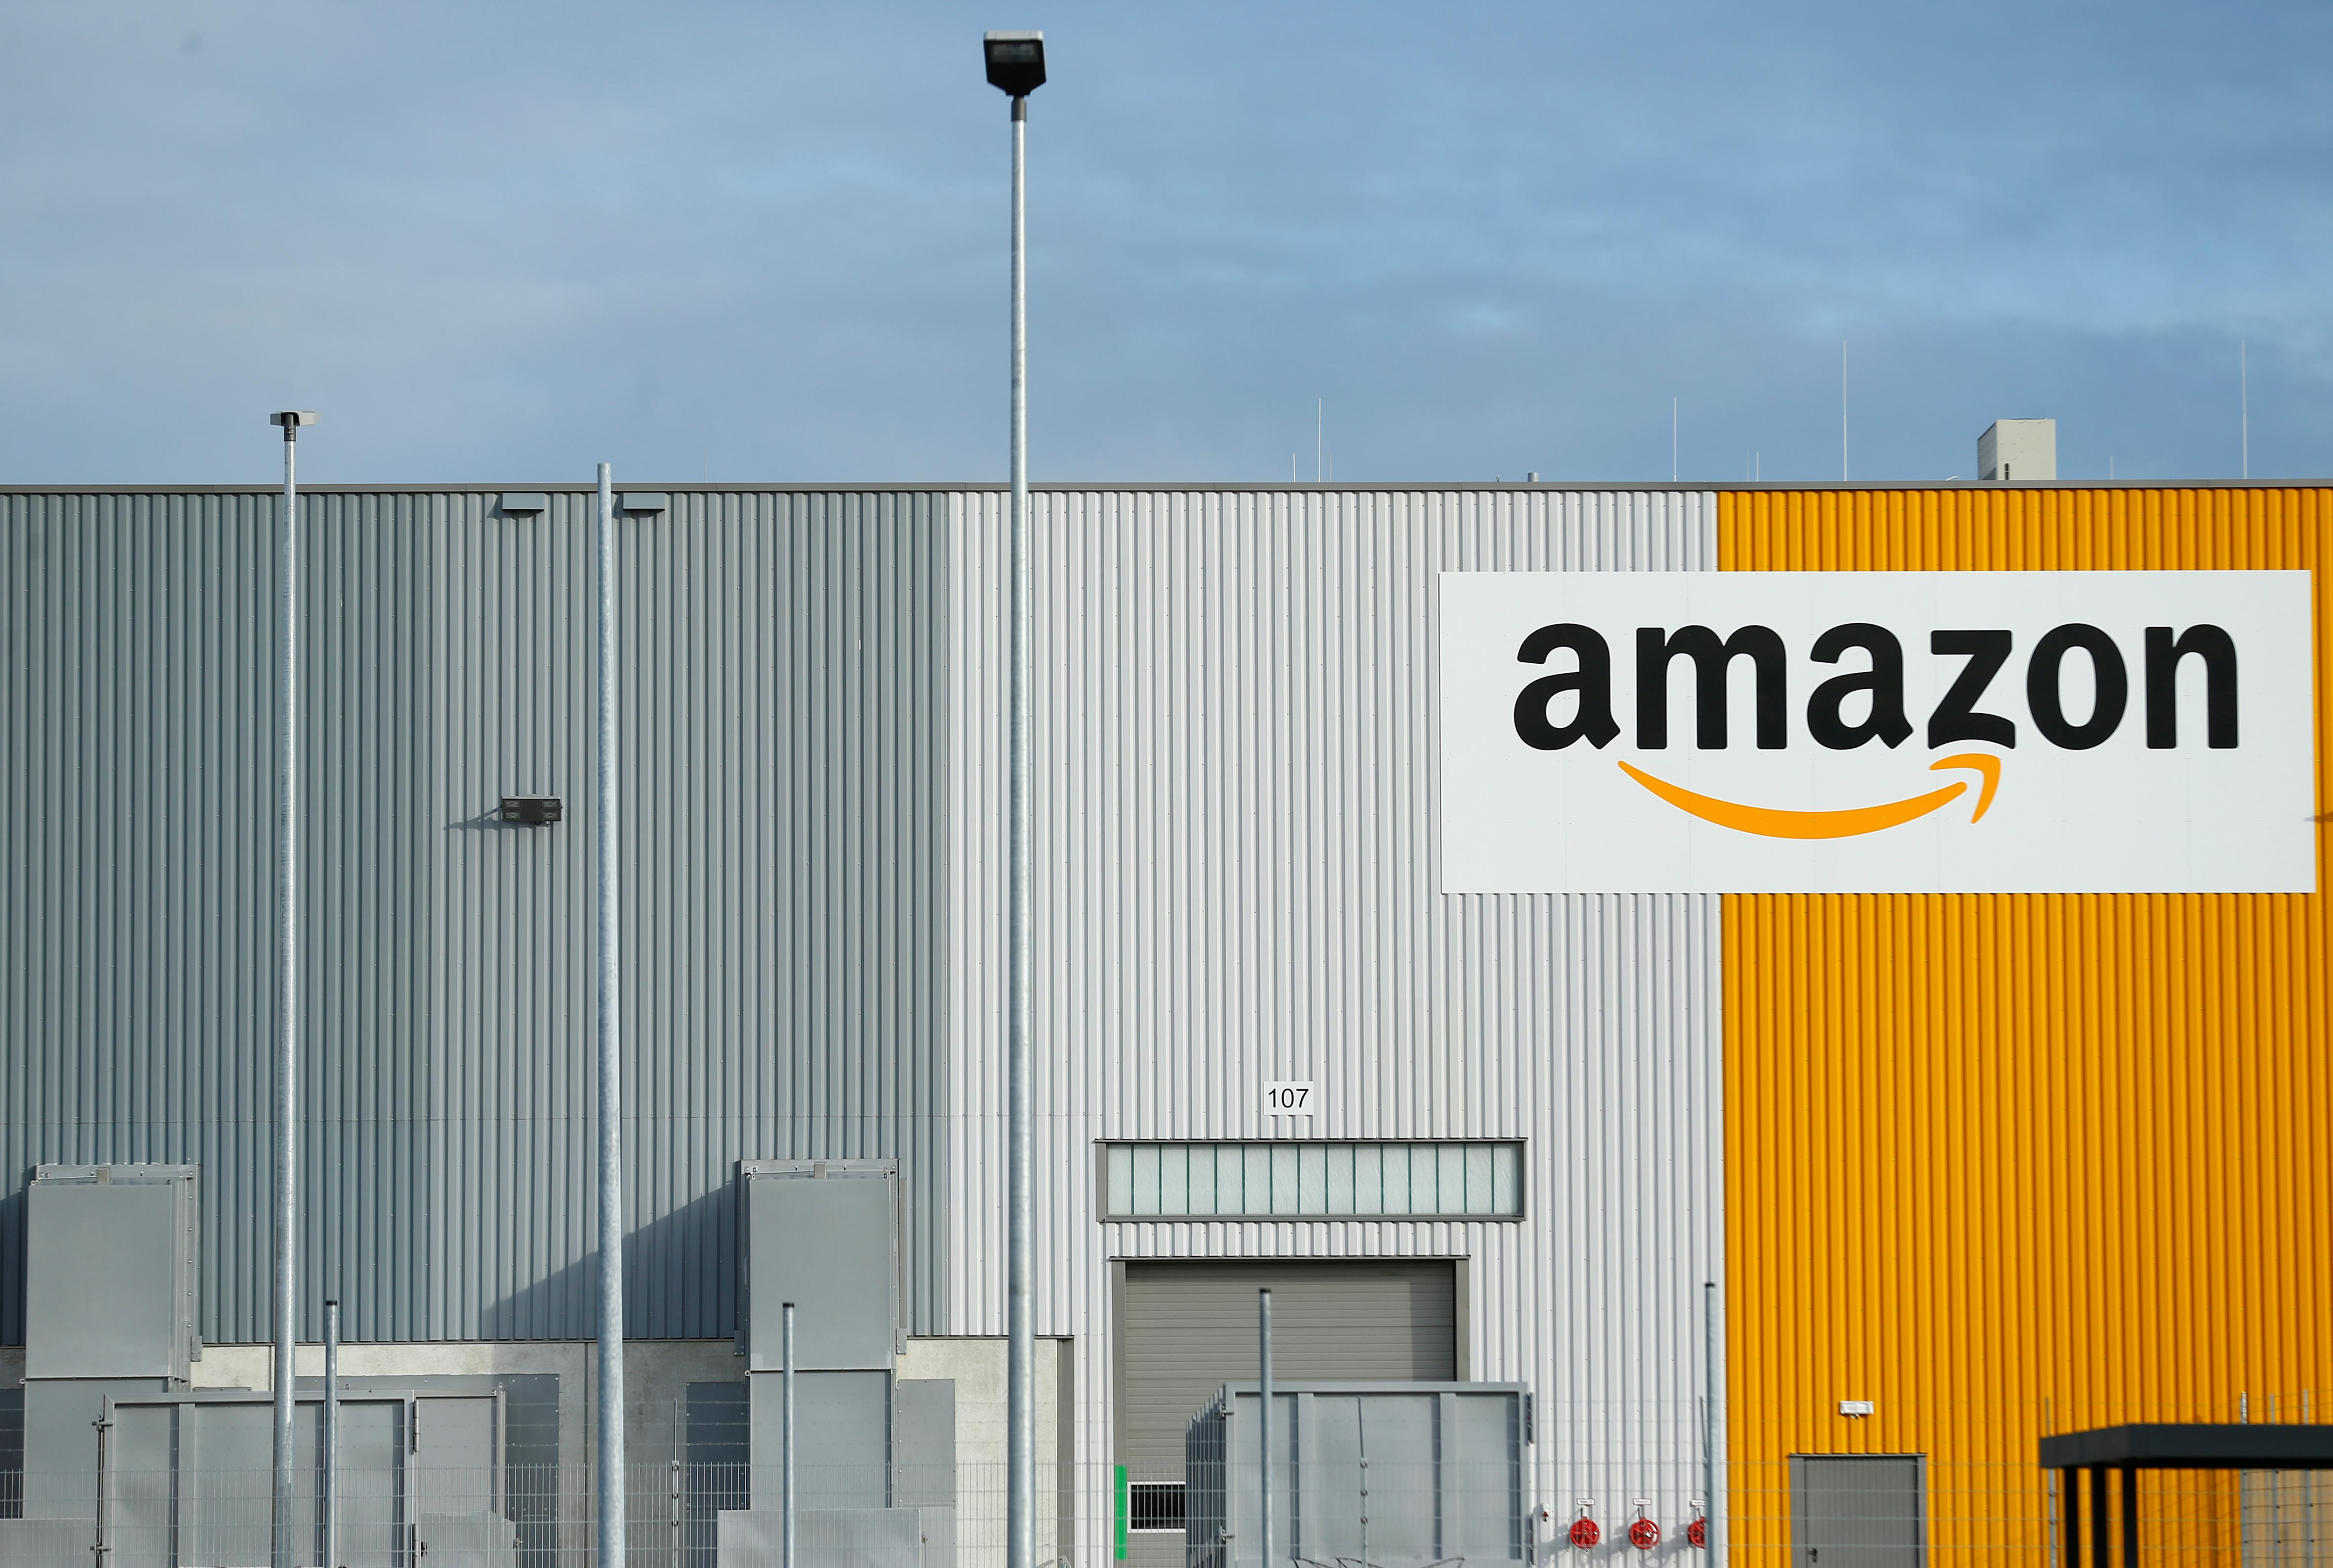 A view of the new Amazon logistic center with the company